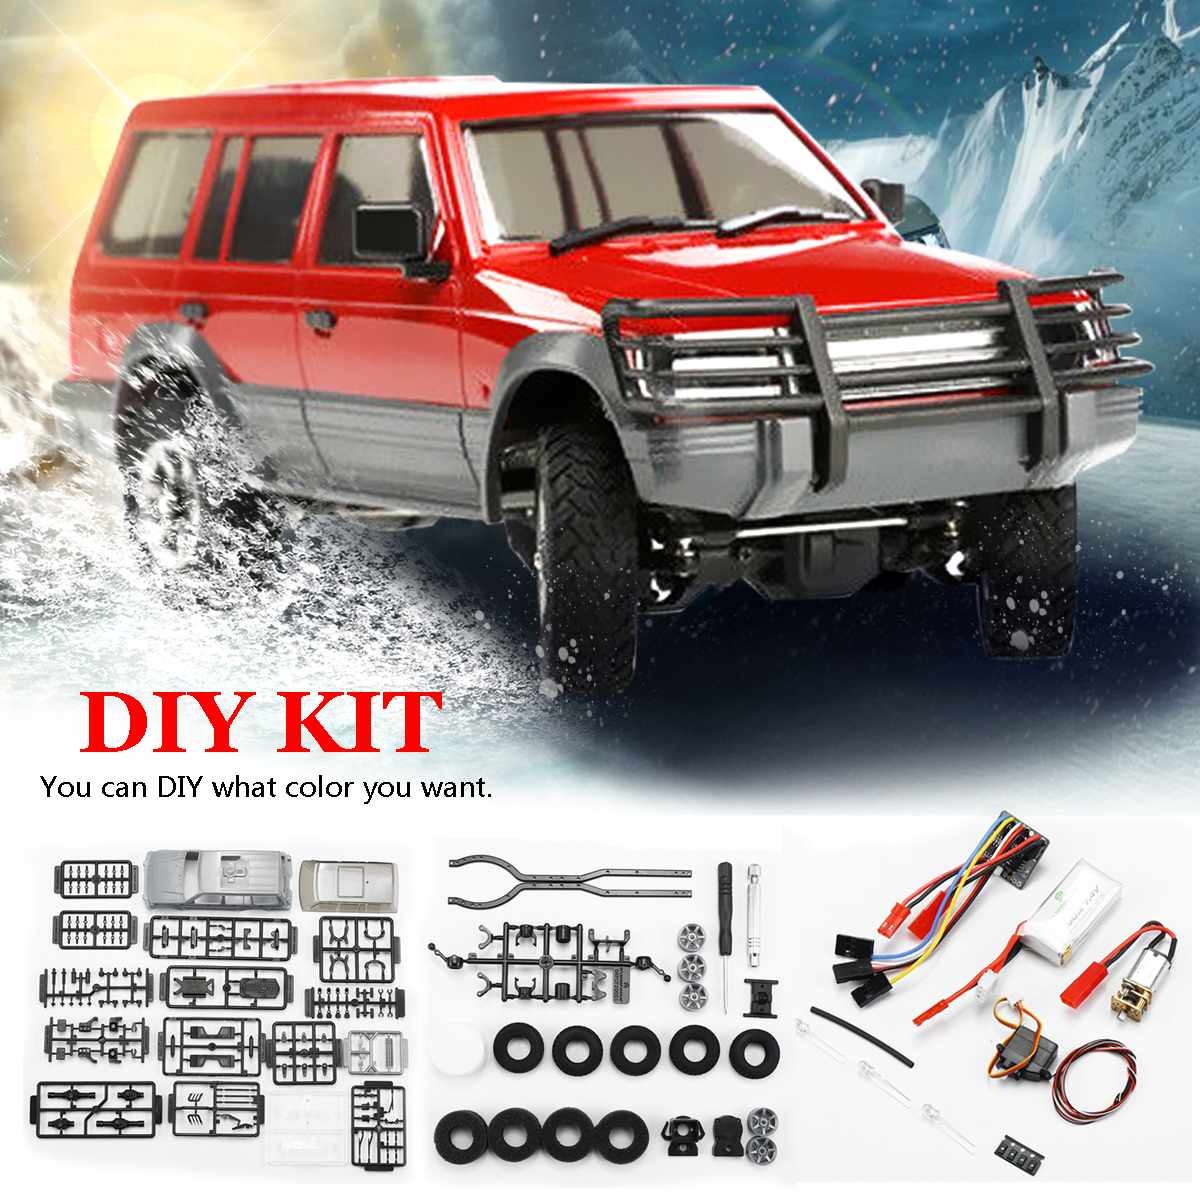 Orlandoo-Hunter 1/32 4WD DIY Assembly <font><b>Car</b></font> Kit RC Rock Crawler OH32A02 Red With <font><b>Electronic</b></font> Parts 300rpm Brushed Motor <font><b>Kids</b></font> Toys image